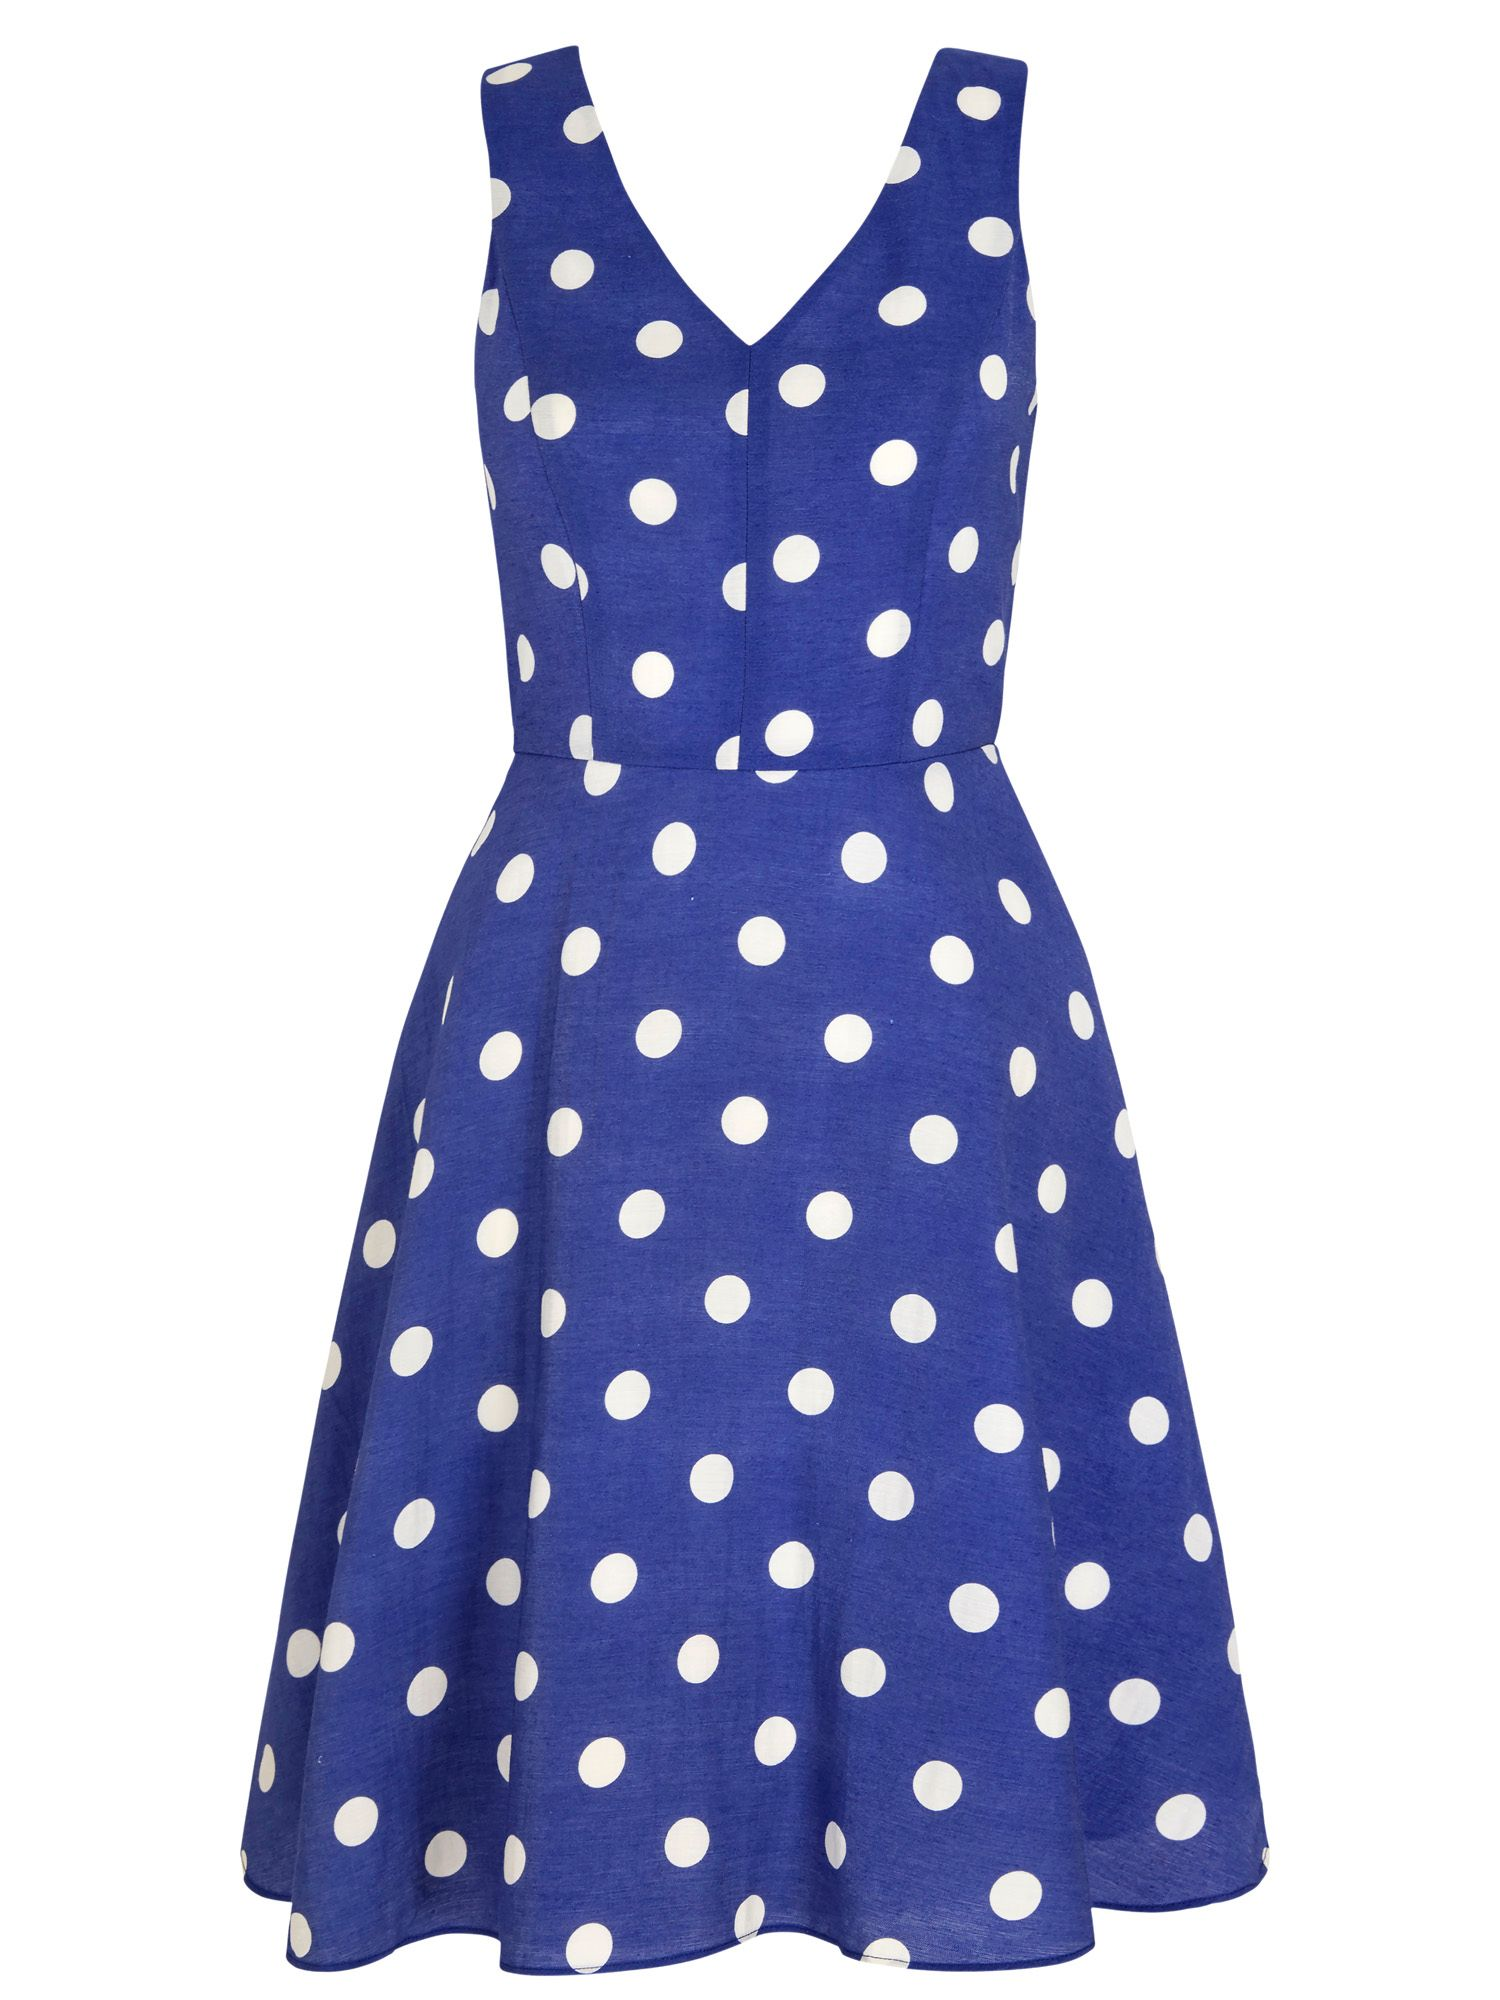 Yumi Polka Dot Print Day Dress, Blue